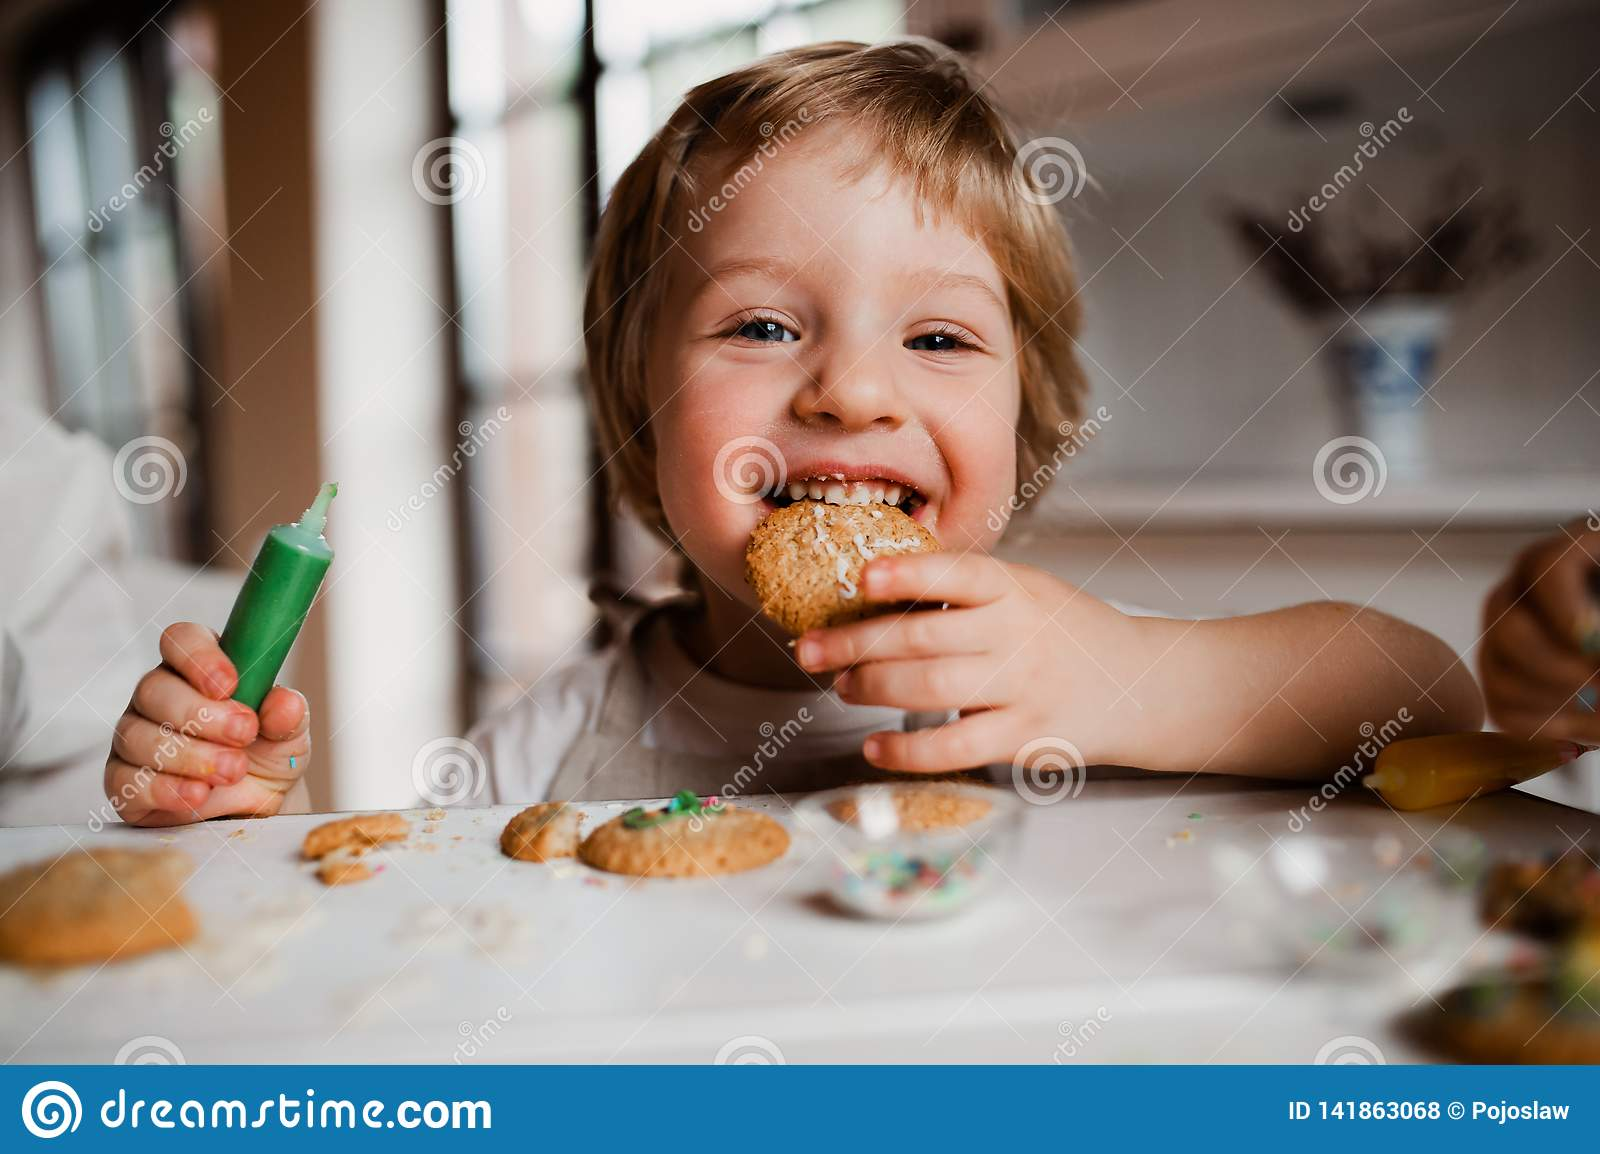 A small toddler boy sitting at the table, decorating and eating cakes at home.